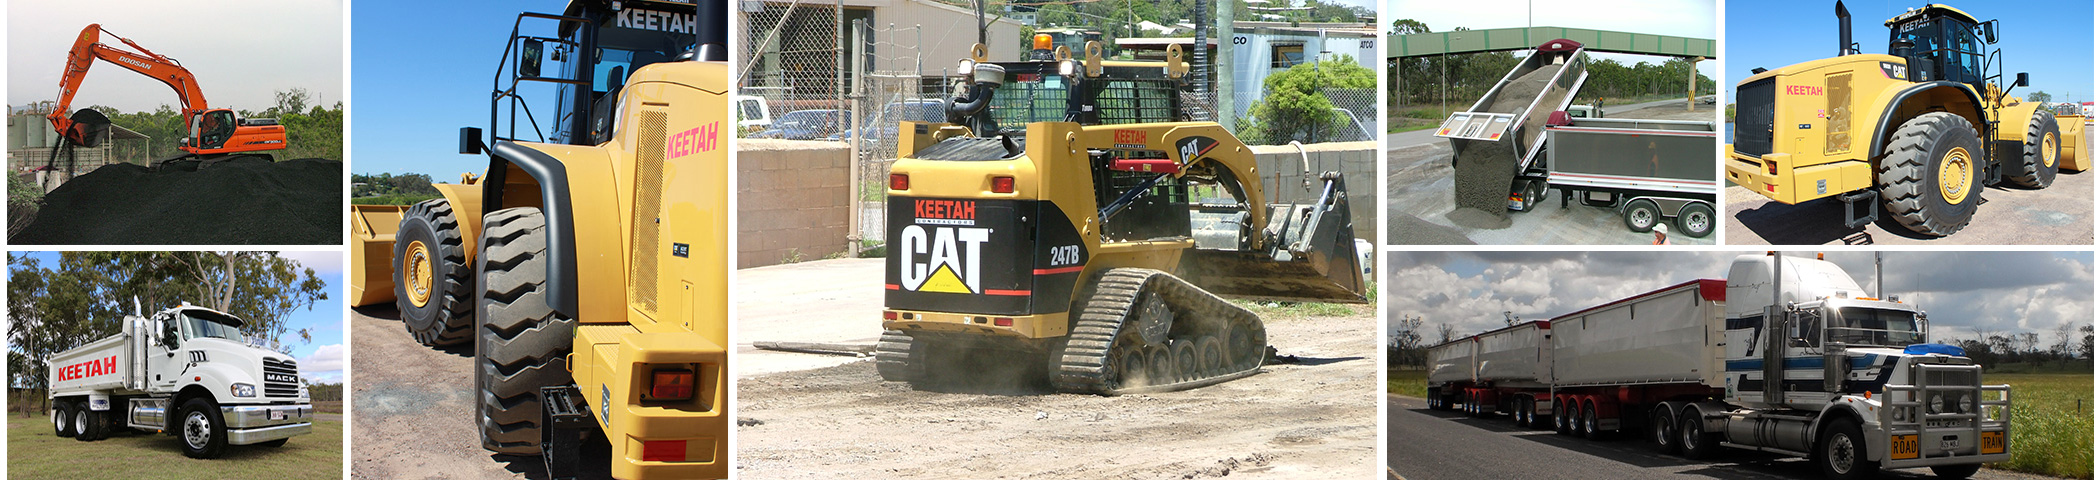 About Us - Building Excavation and Excavator Services Gladstone